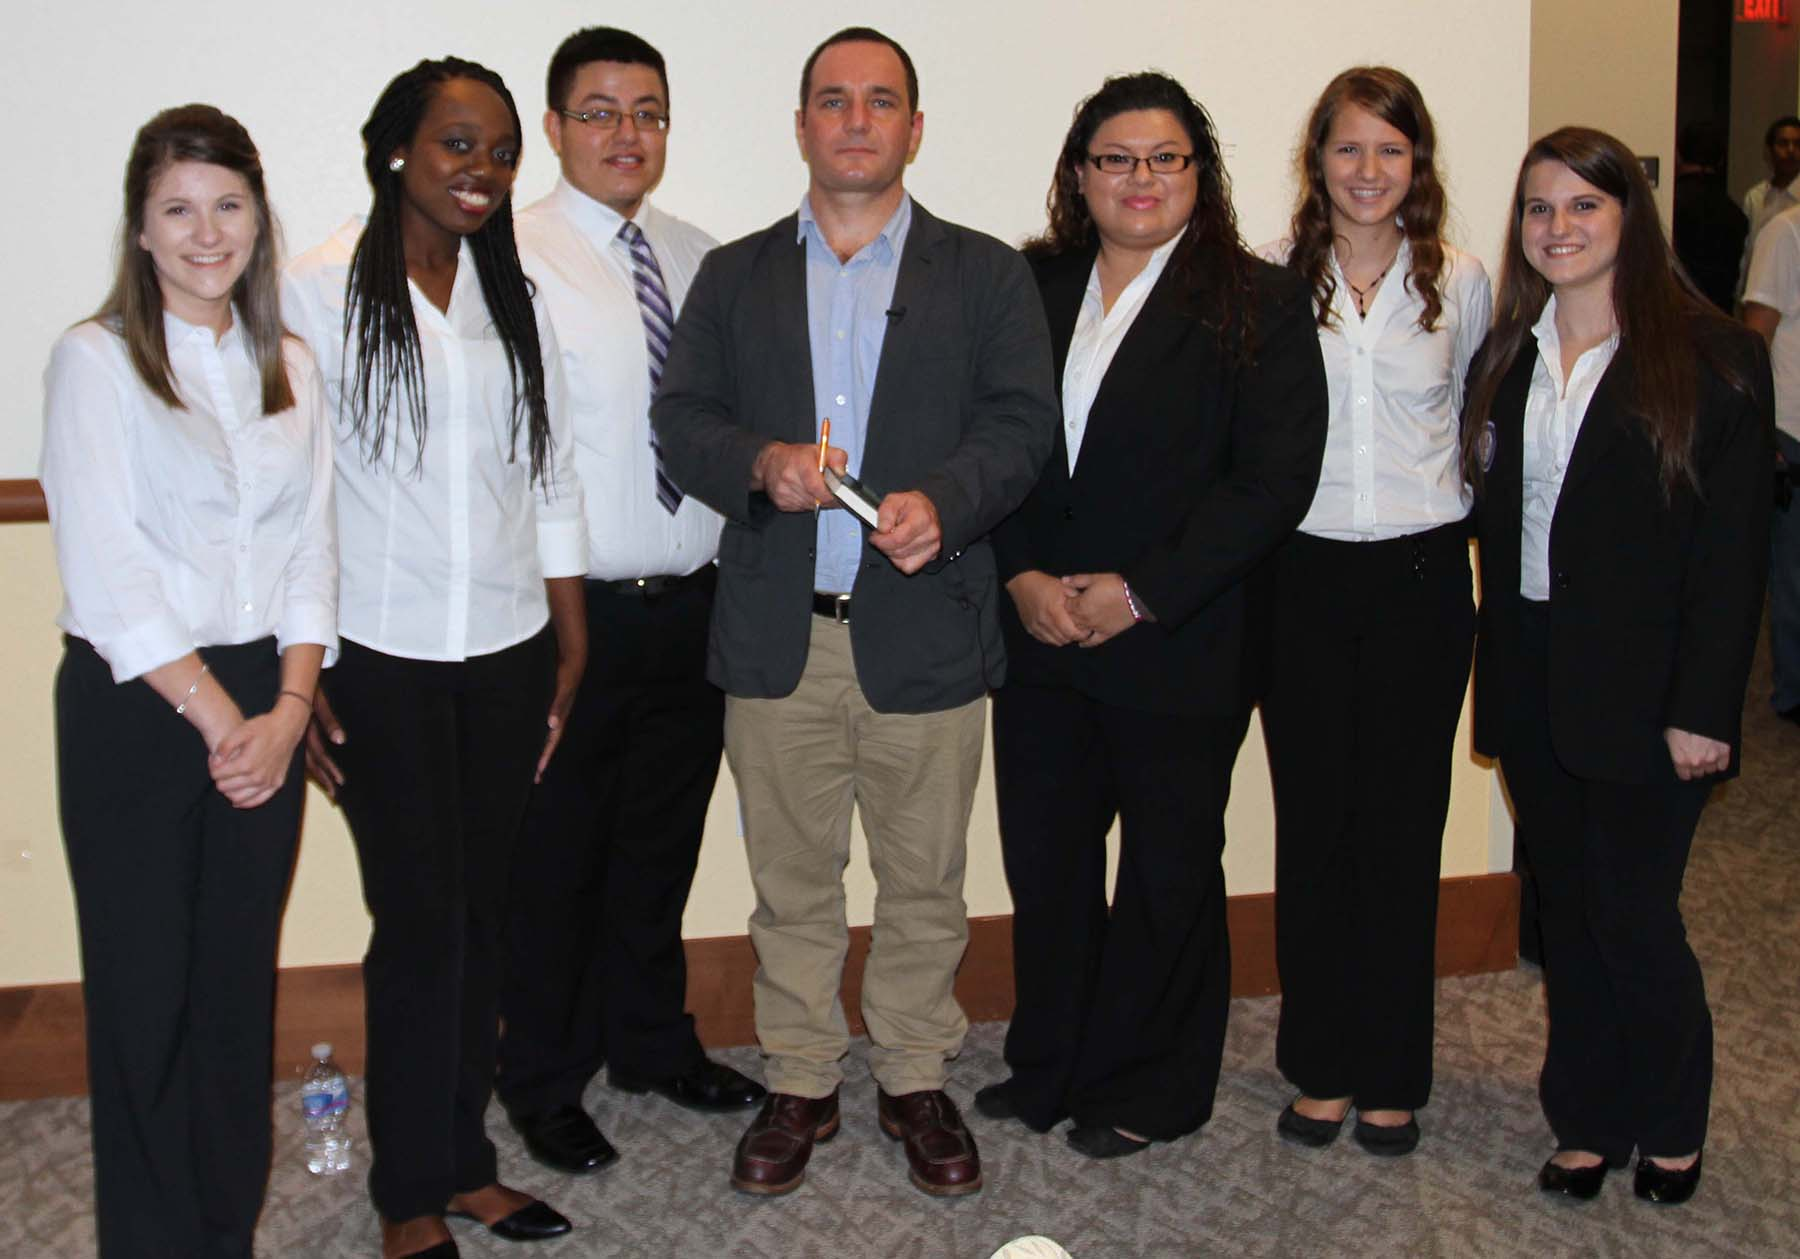 SGA Students with Dr. Christian Parenti